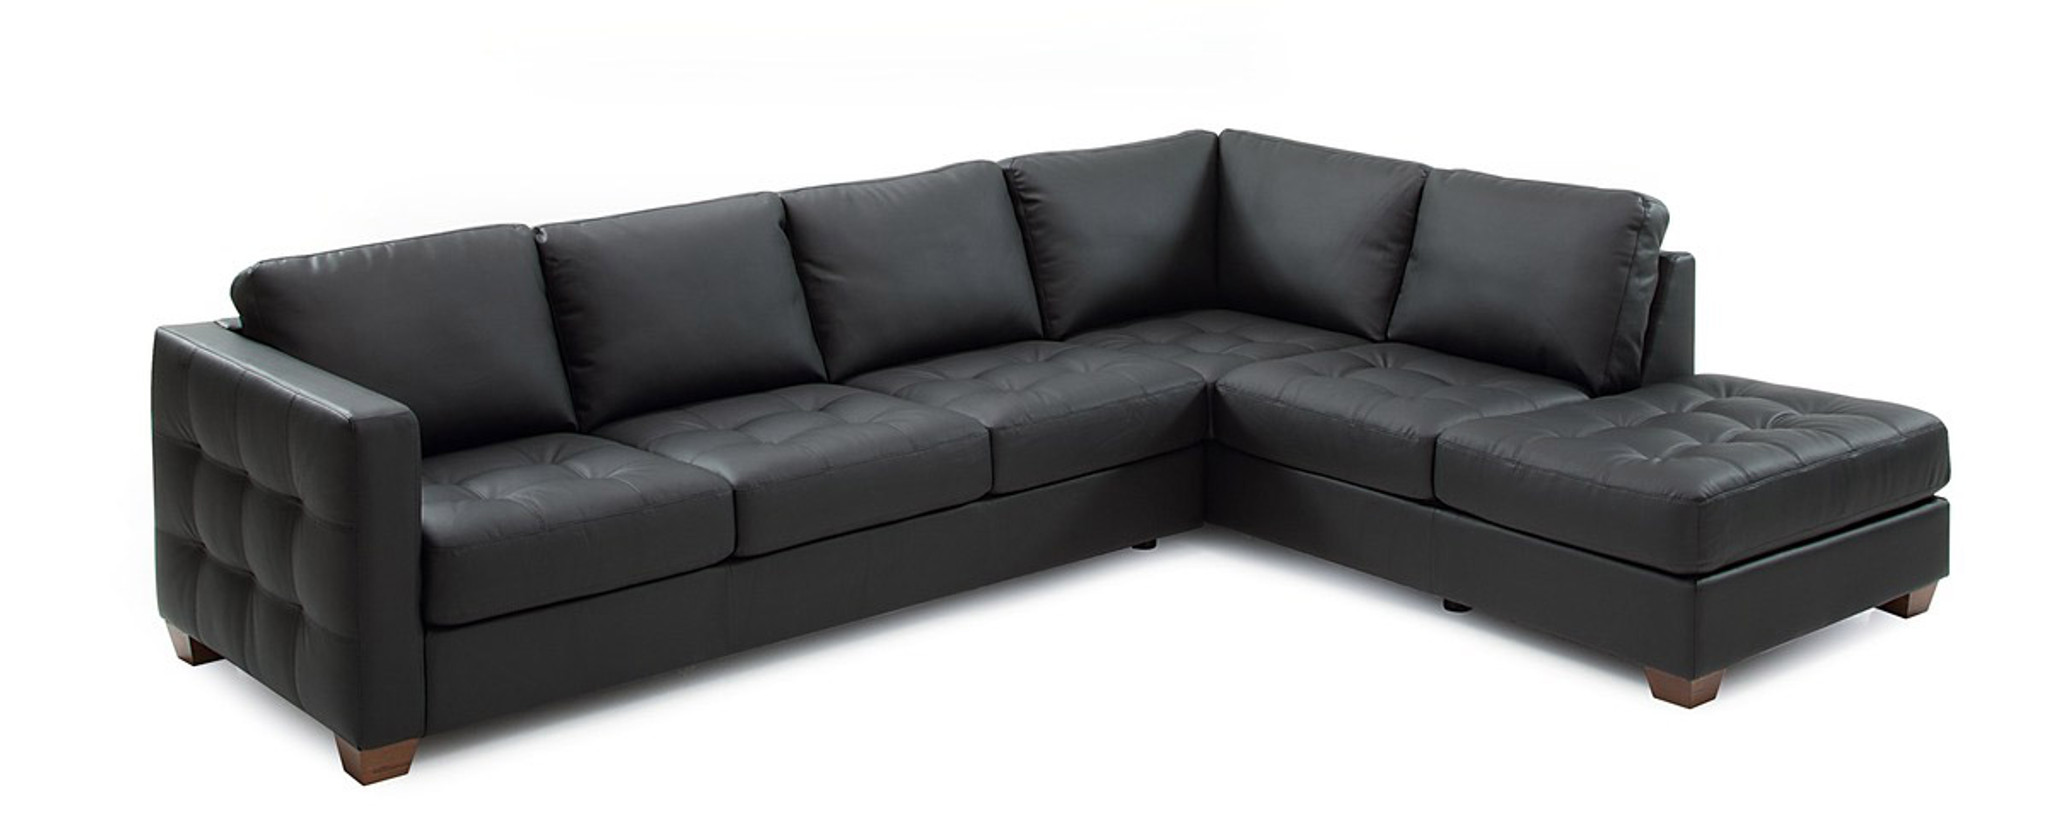 Palliser Barrett sectional Sofa with pillows